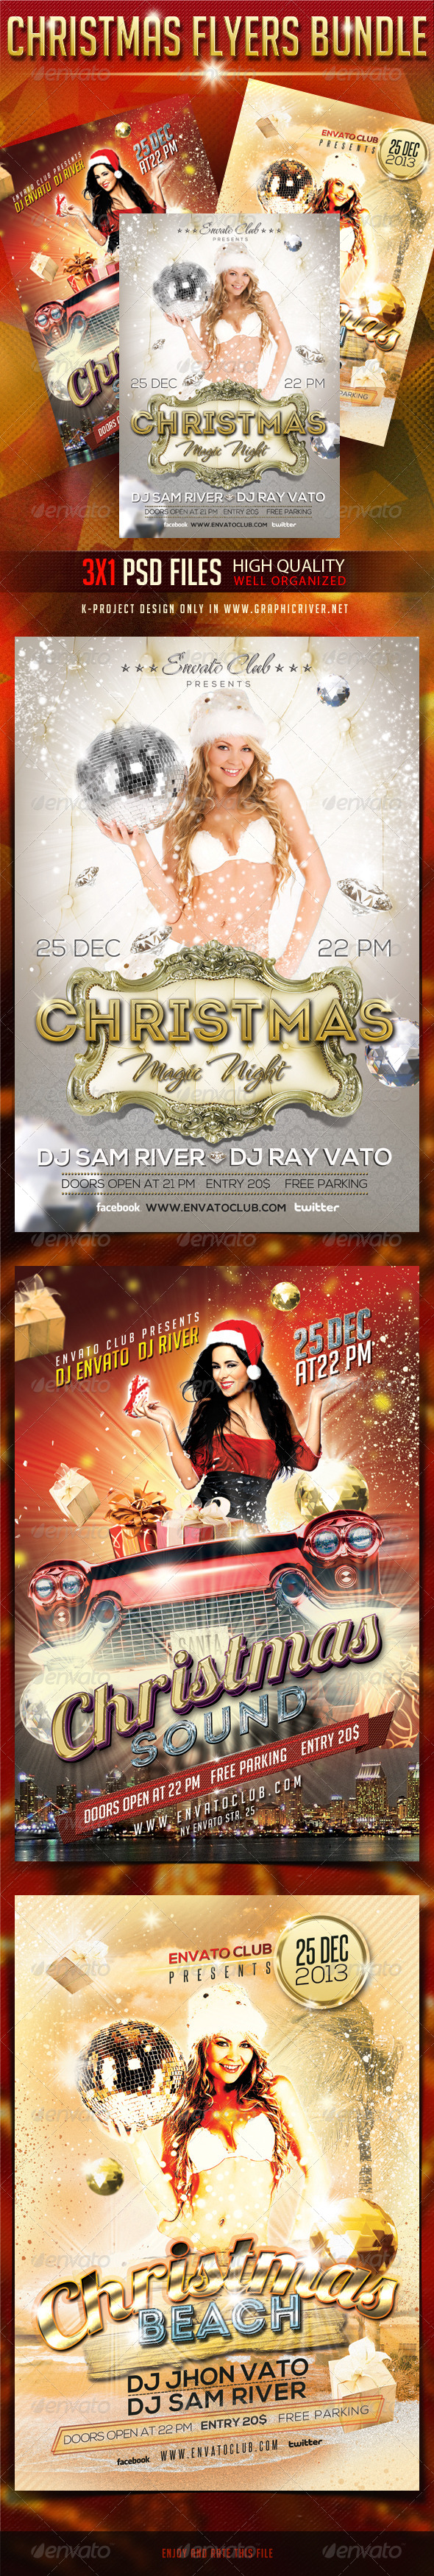 GraphicRiver Christmas Flyers Bundle 6069515